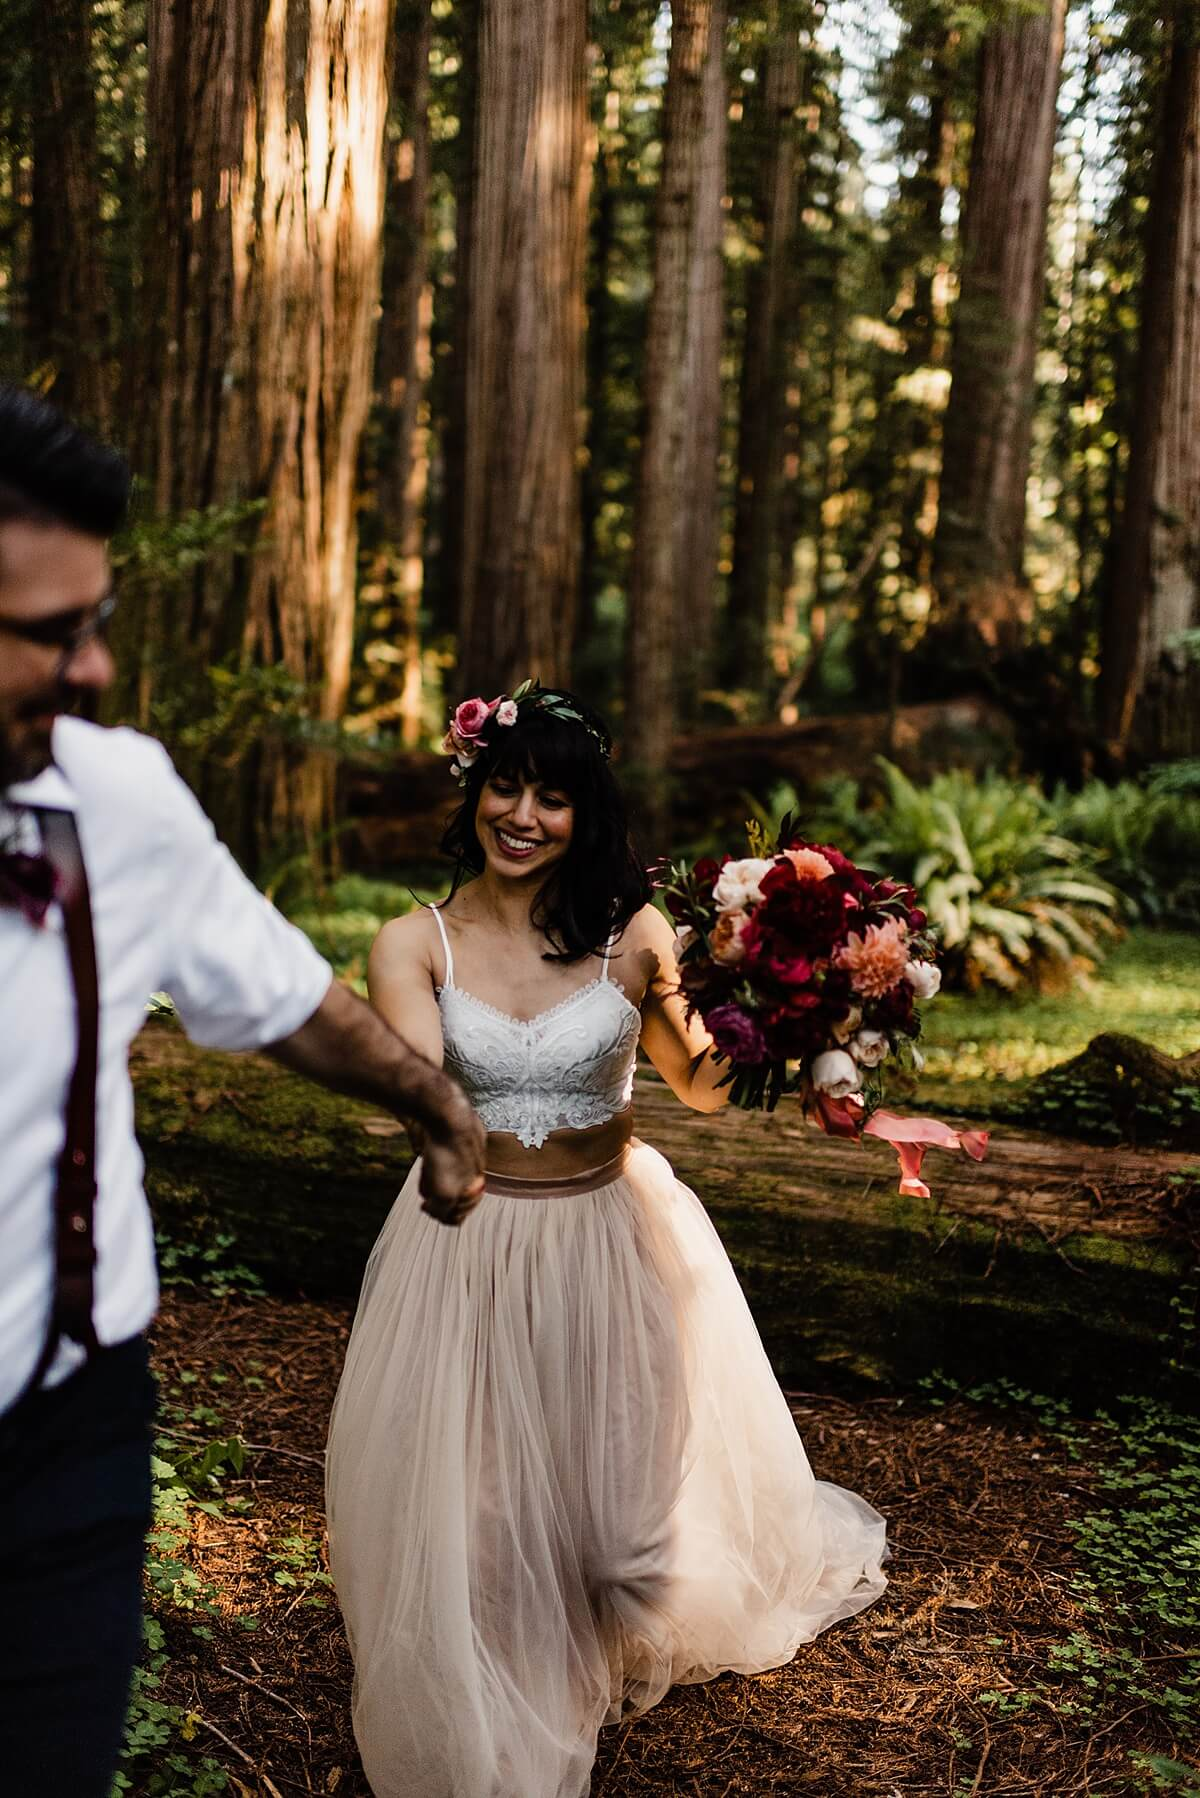 Allison-Brooks-Jedediah-Smiith-Redwoods-Adventure-Elopement-Wedding-S-Photography-Blog_0047.jpg